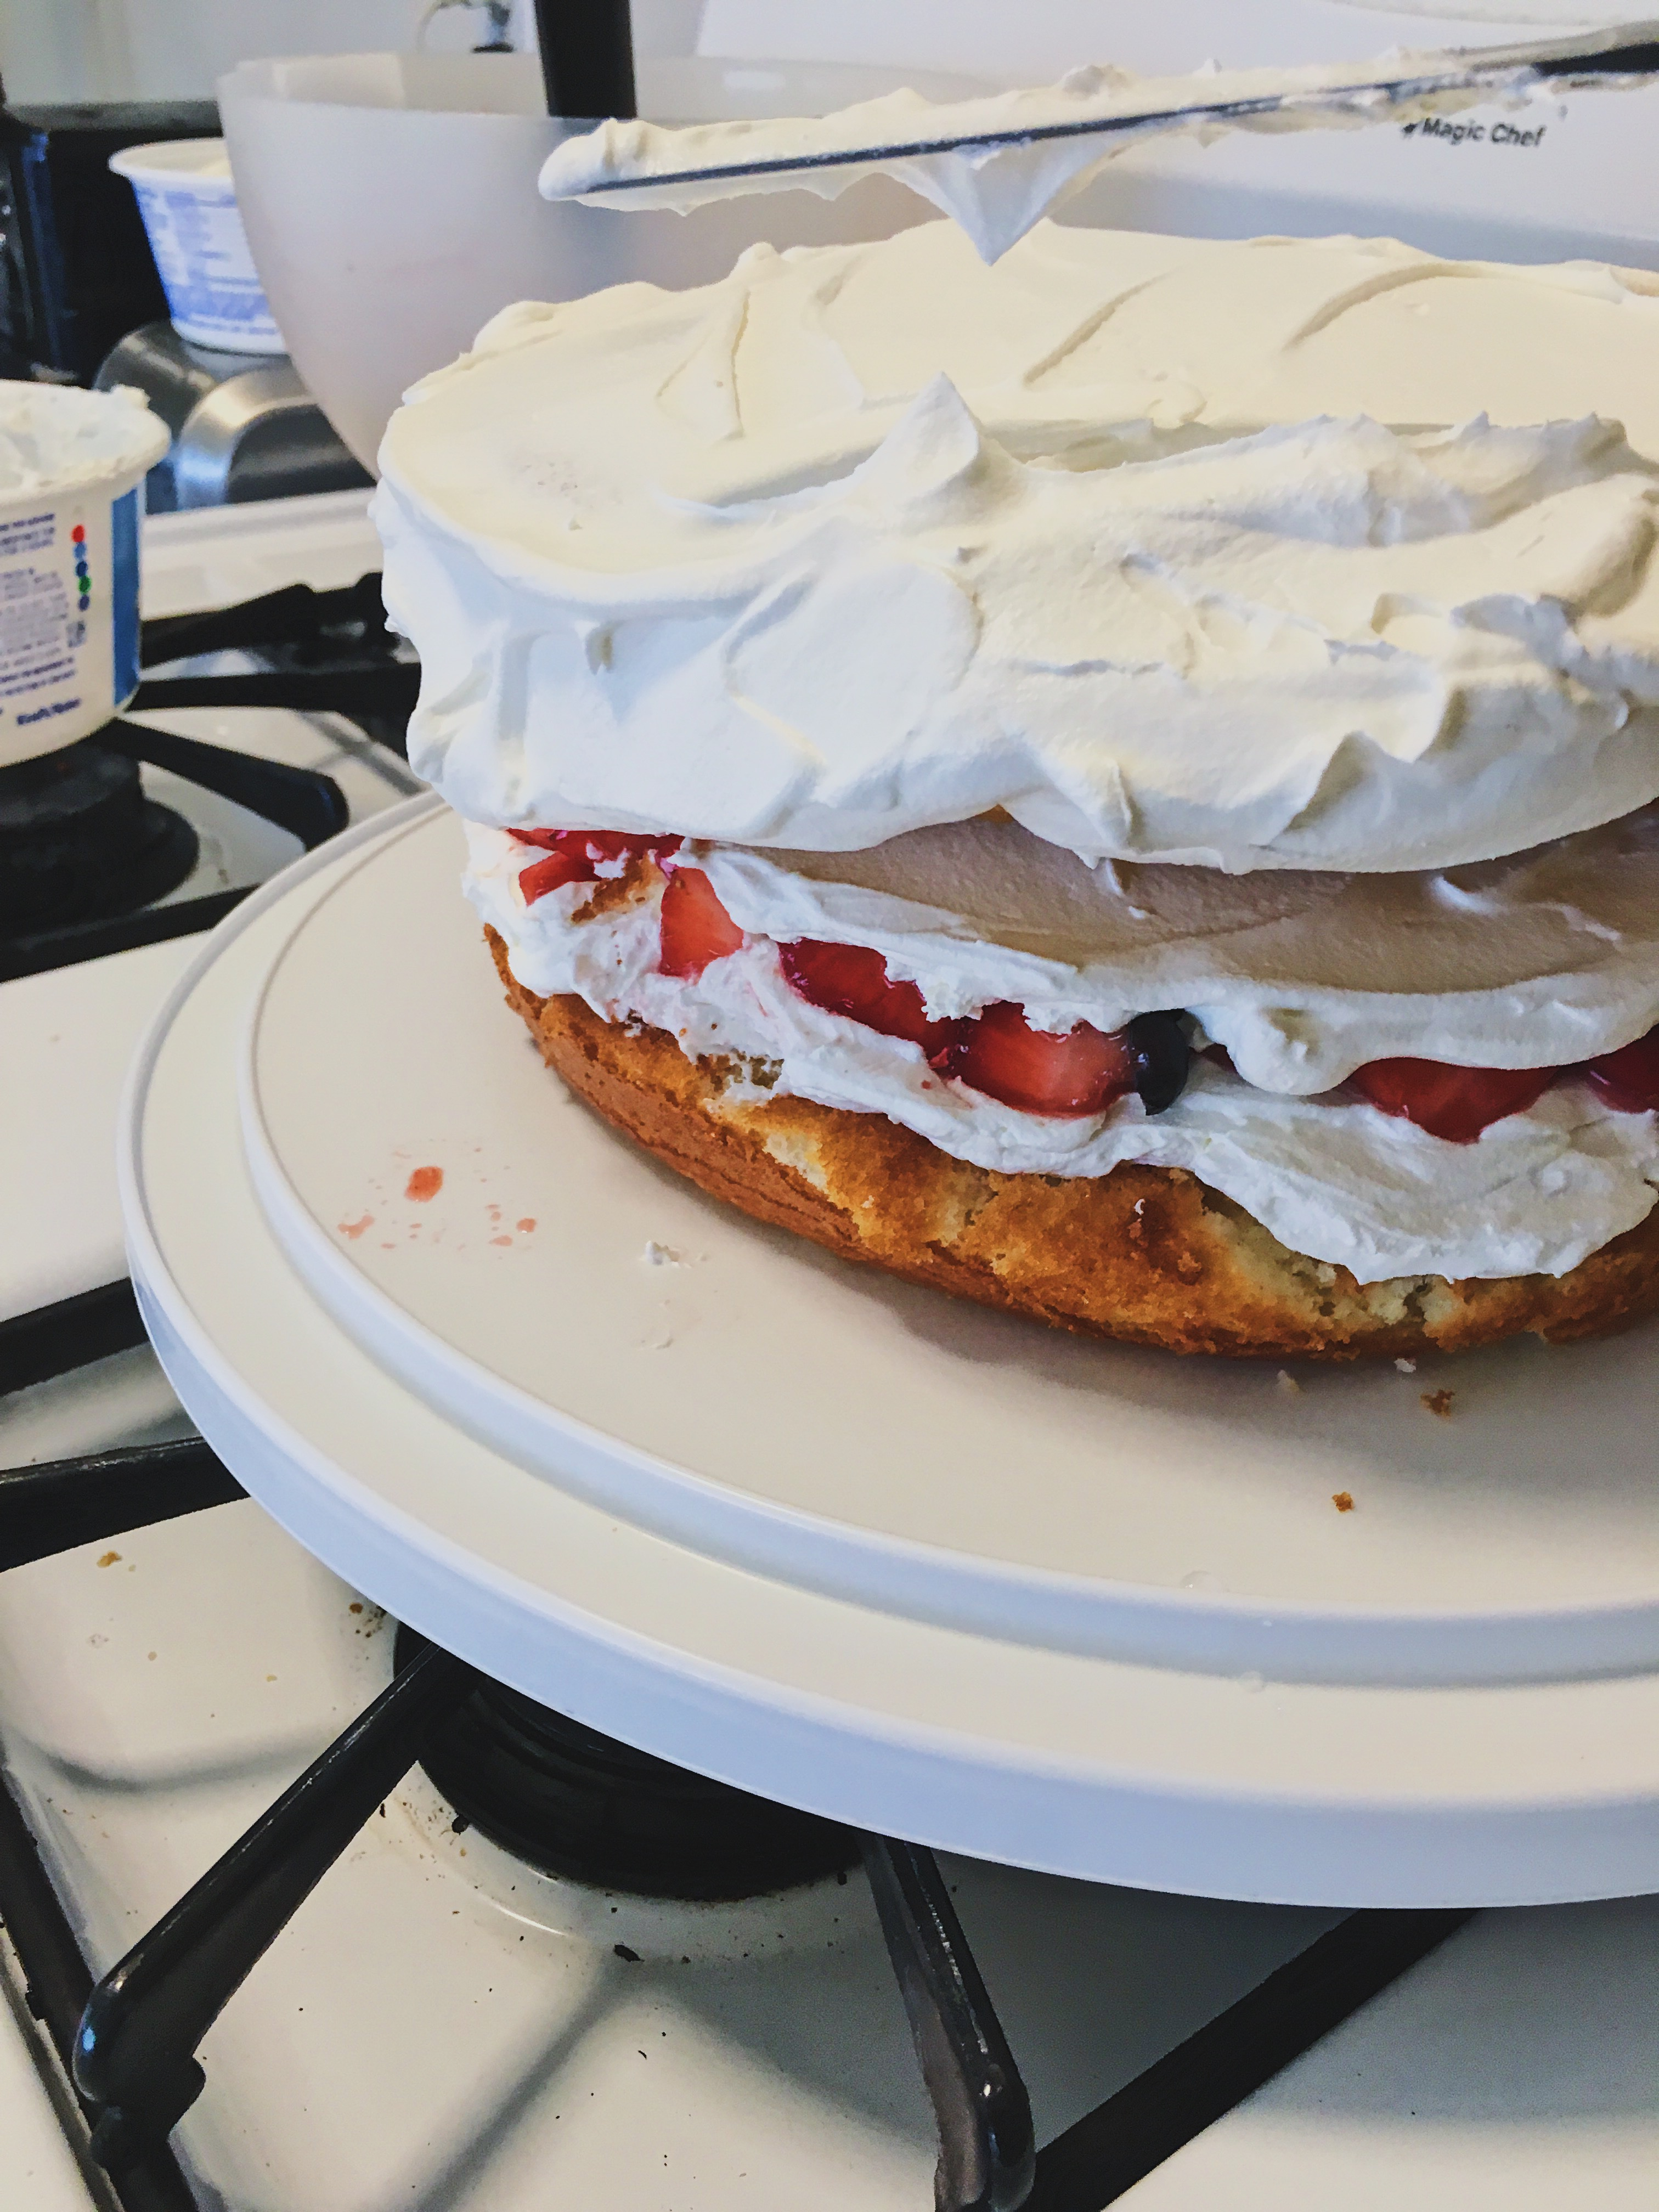 cover cake in cool whip